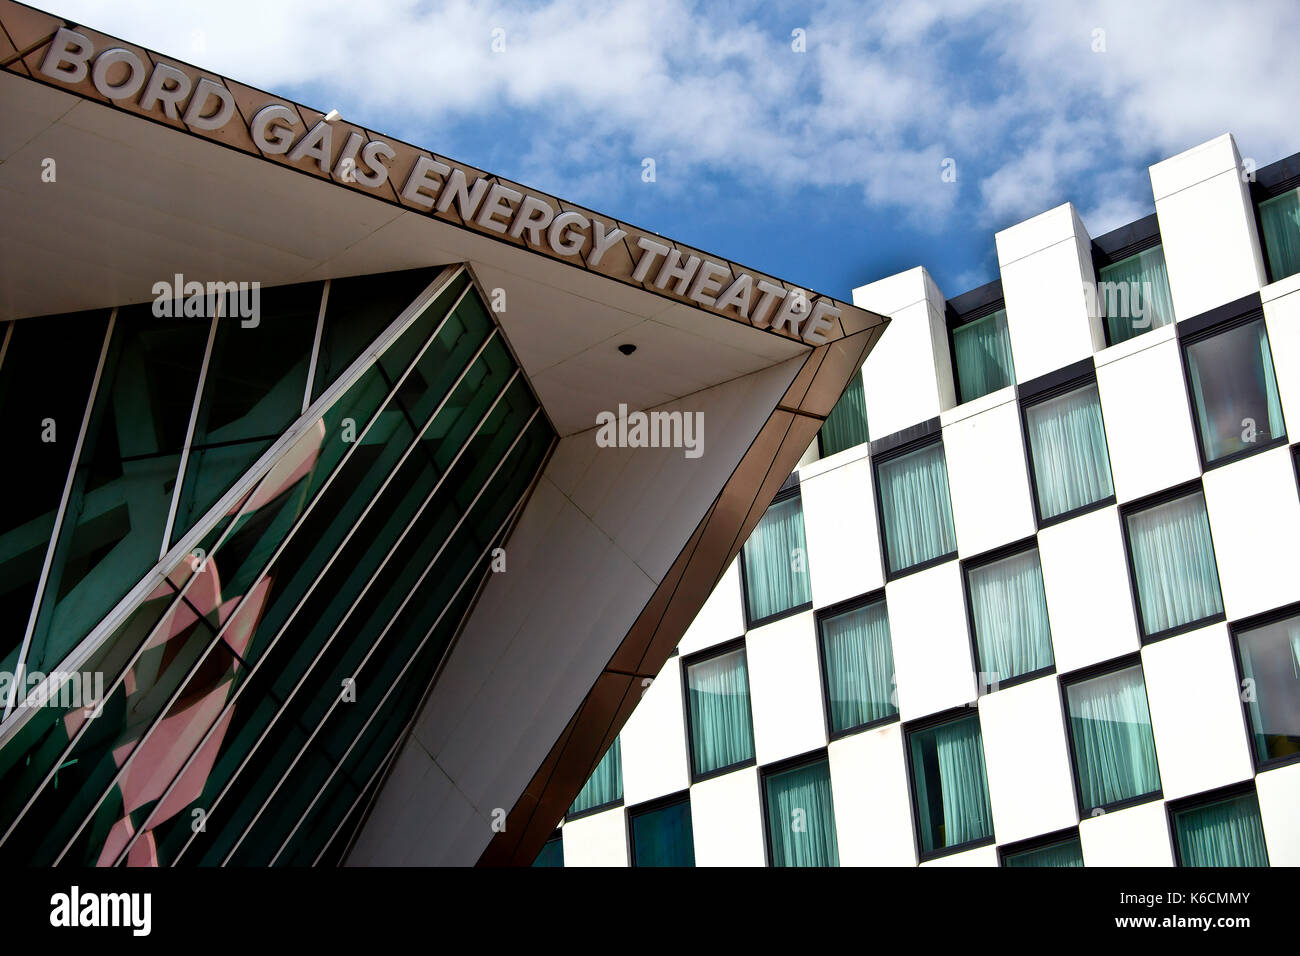 Bord Gais Energy Theatre by American architect Daniel Libeskind and facade of The Marker Hotel, Grand Canal Square, docklands. Dublin, Ireland, Europe - Stock Image